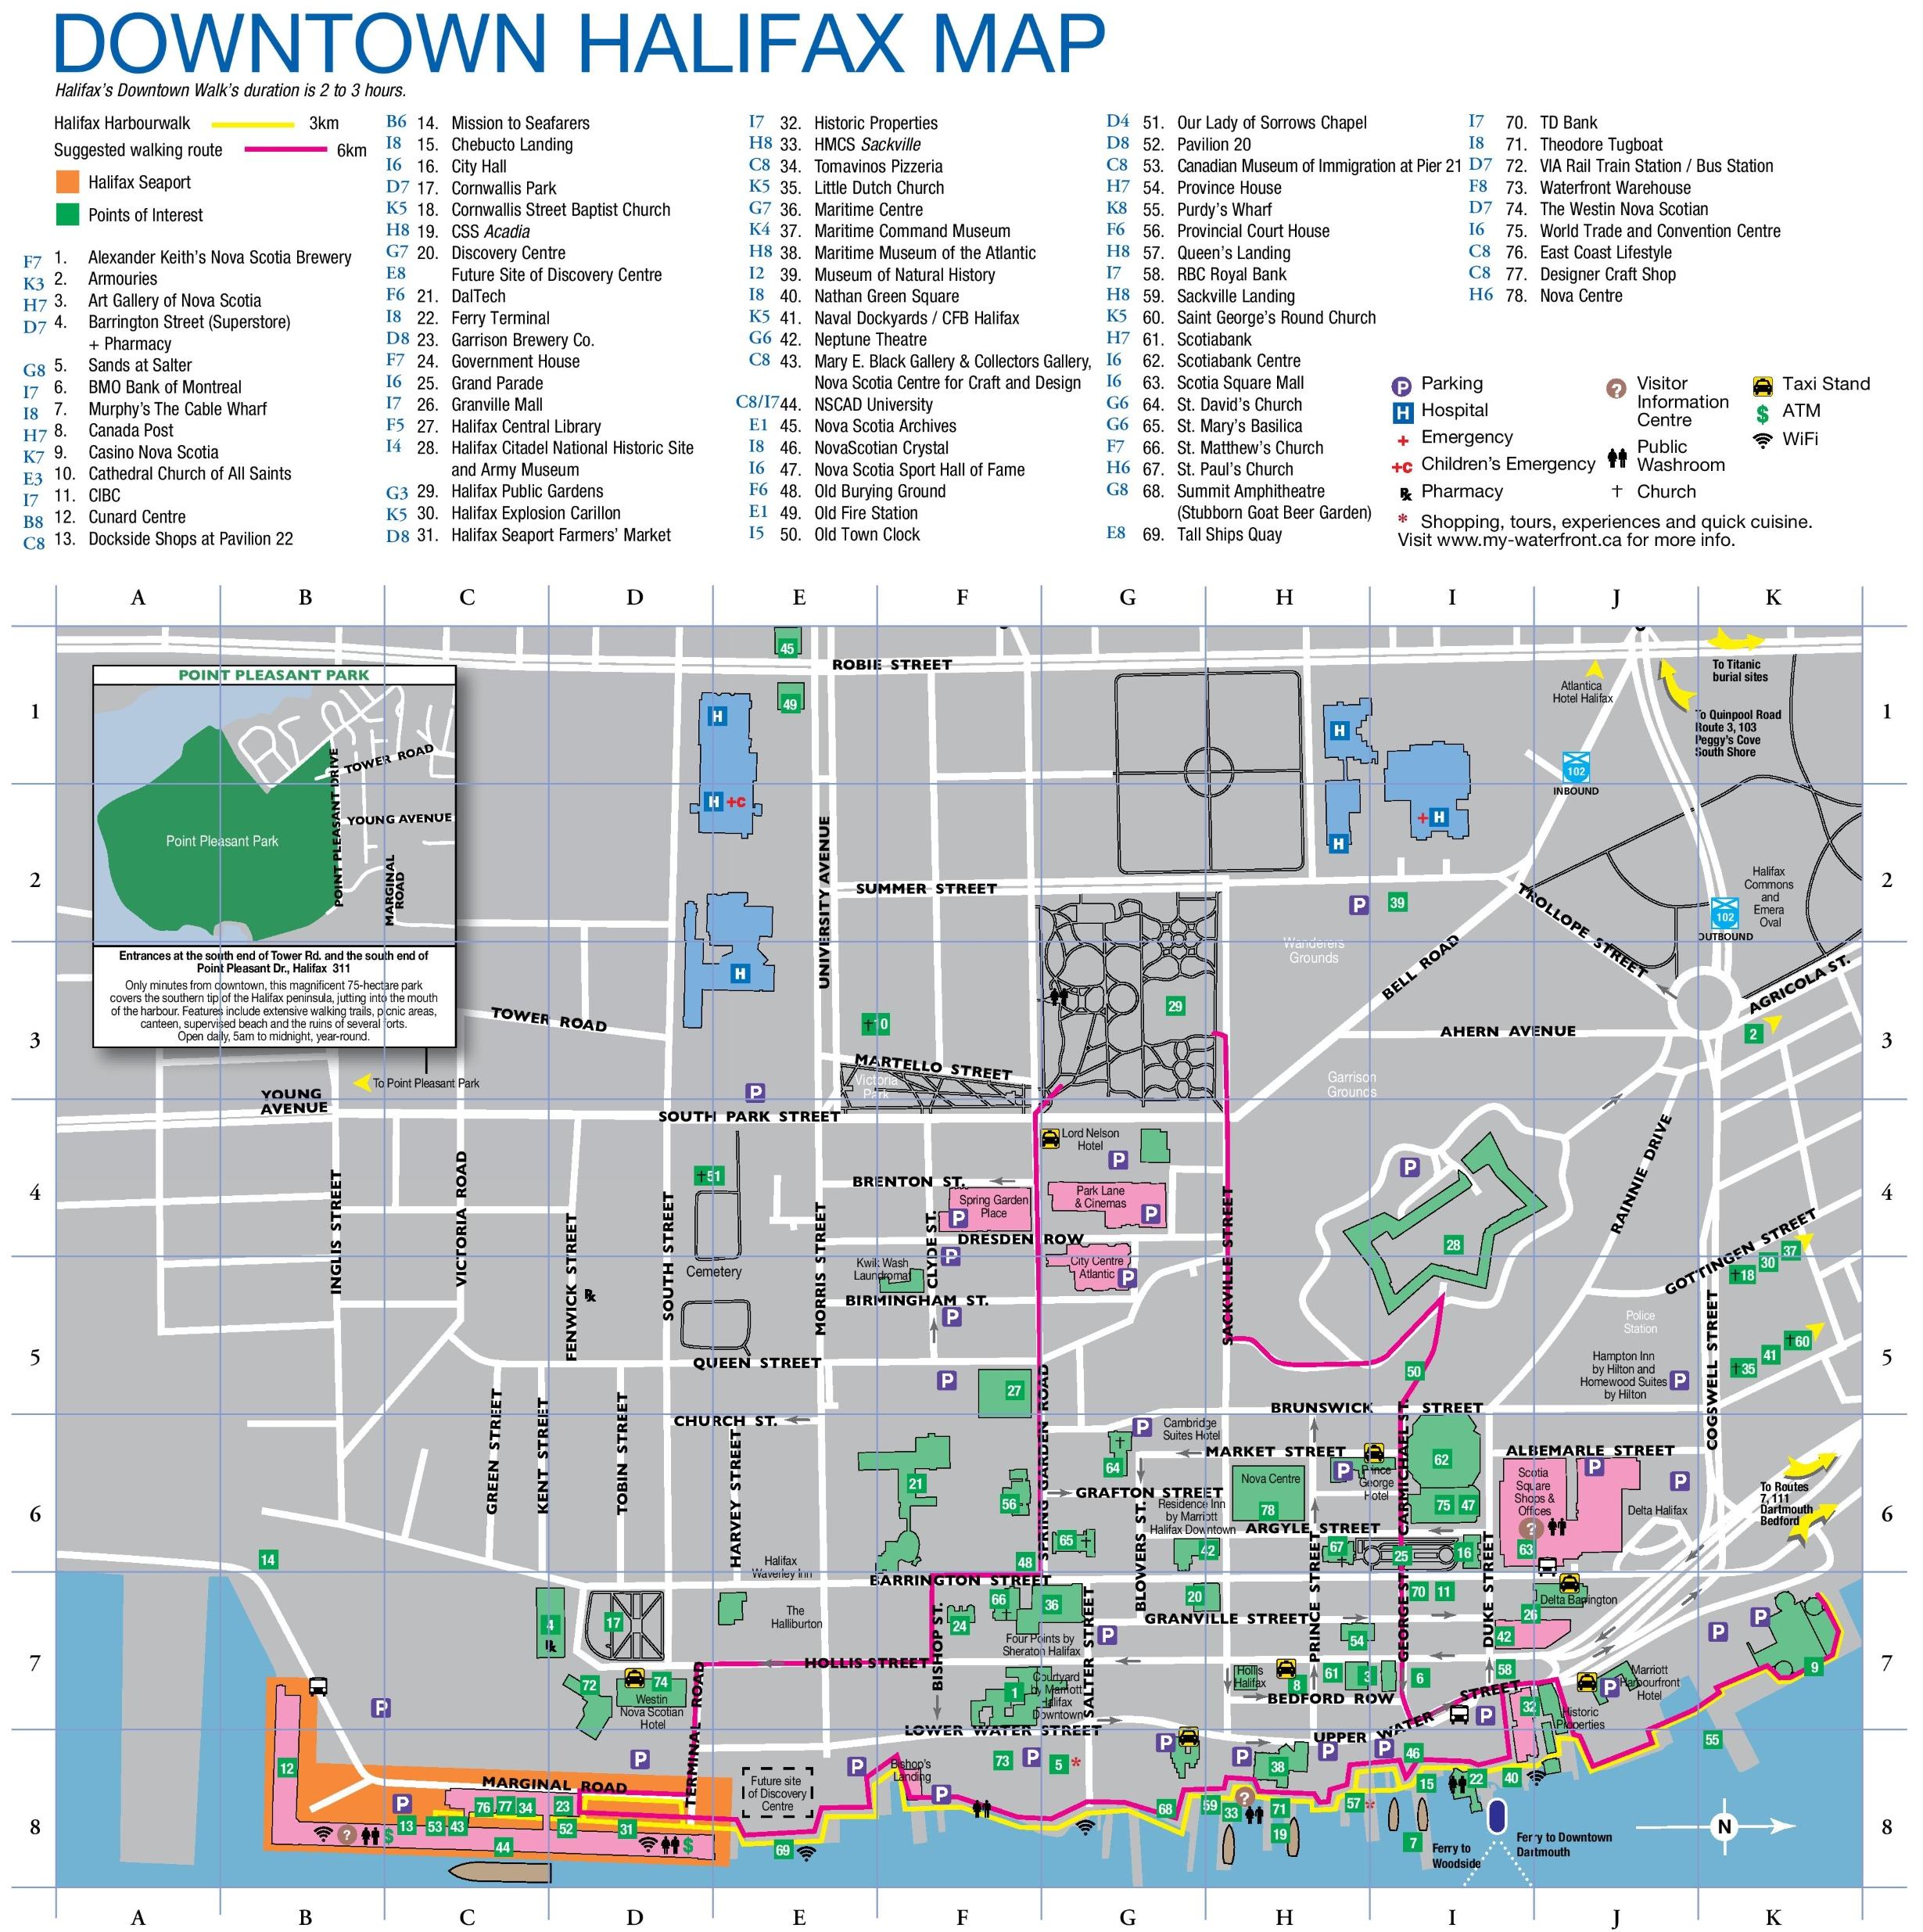 Montreal Downtown Hotel Map | 2018 World's Best Hotels on little burgundy, quartier des spectacles, downtown toronto, hec montreal map, montreal qc map, saint-léonard, olympic stadium, downtown montreal canada, montreal world map, quartier latin, st. peter's basilica map, montreal airport map, mount royal map, old montreal, little italy, detroit new hockey arena map, mcgill university map, montreal transit map, west island montreal public transportation map, downtown montreal attractions, montreal subway system map, montreal street map, saint-laurent, quebec, montreal metro map, mount royal, bell centre, montreal hotel map, montreal chinatown, montreal tourist map, financial district, toronto, montreal on map, mile end, montreal casino map,